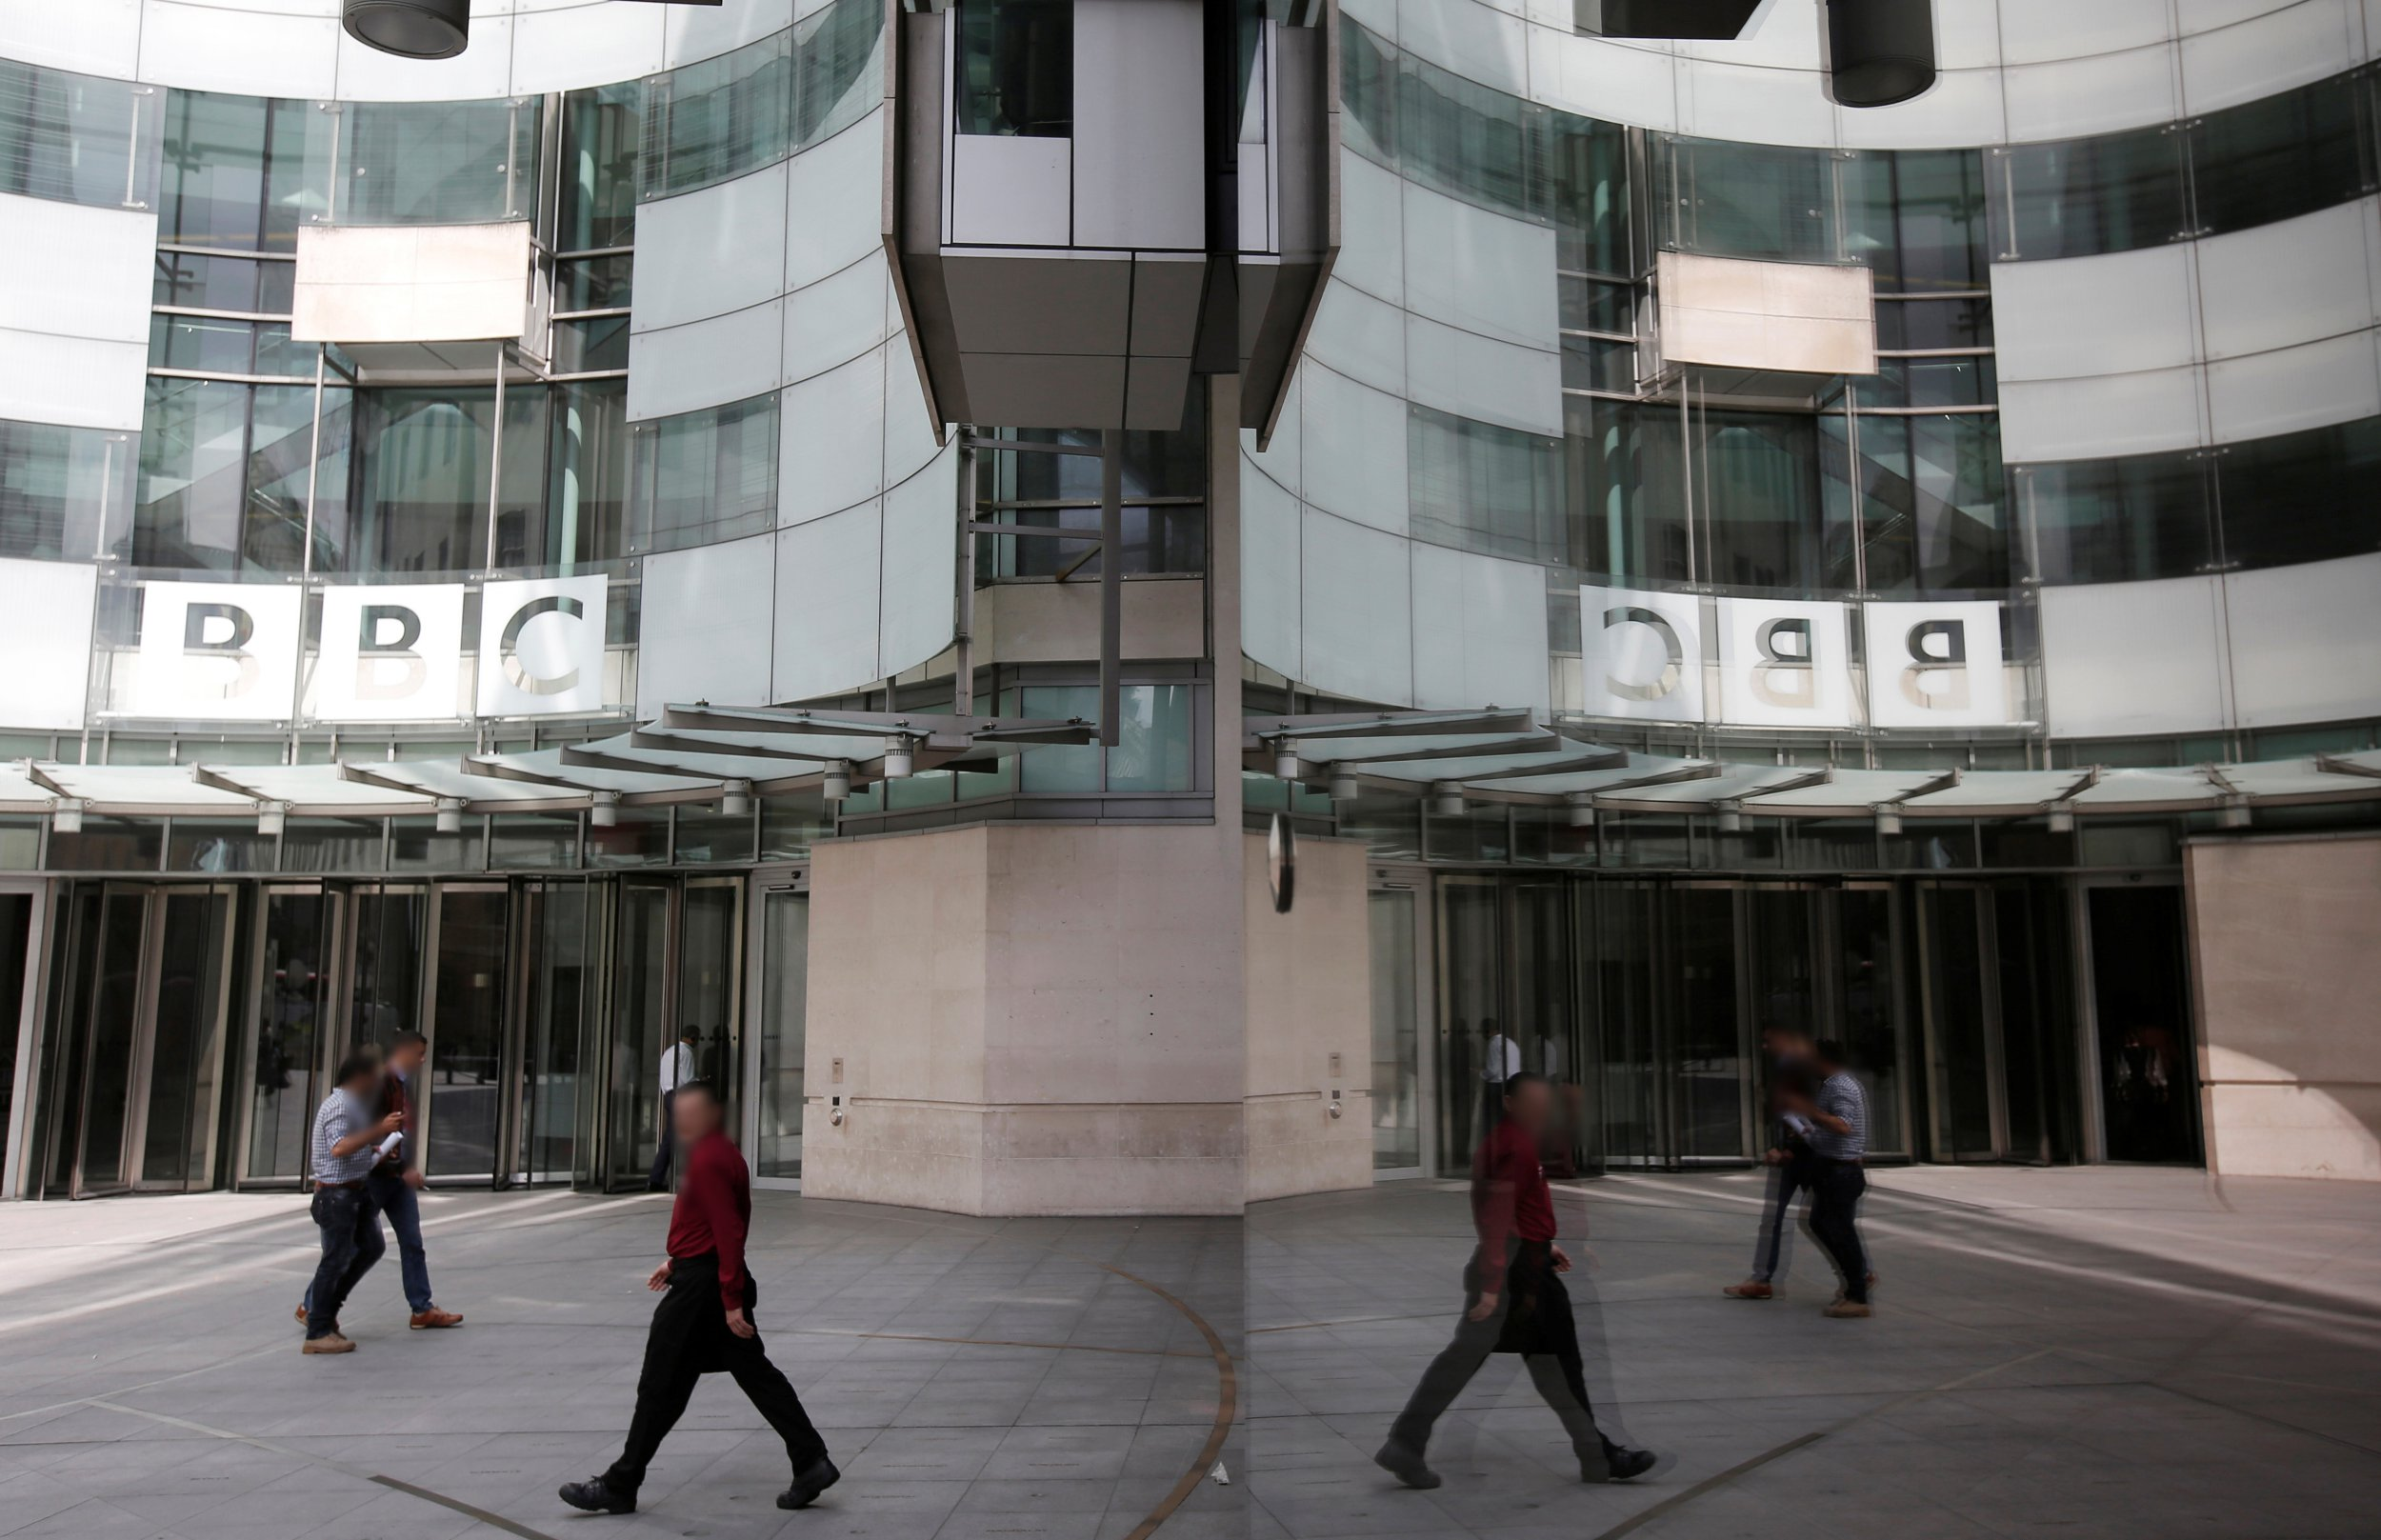 BBC presenter says she considered killing herself over working conditions